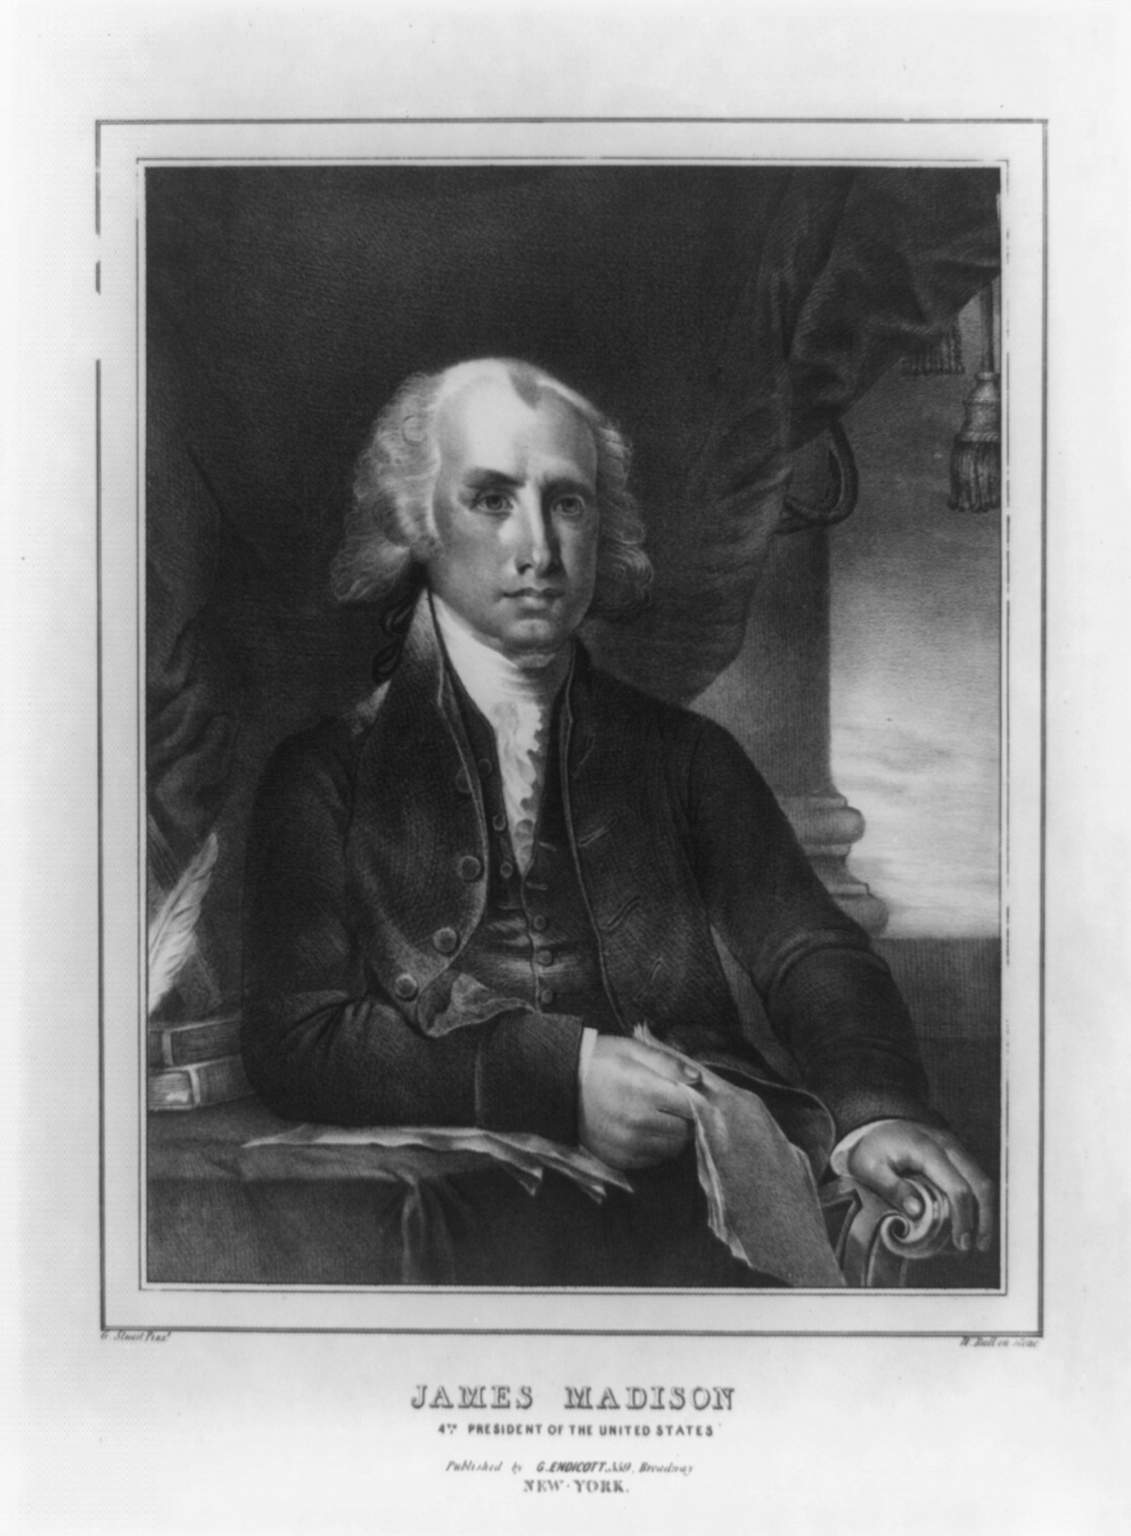 president james madison essay Essay on james madison 1512 words 7 pages james madison begins his famous federalist paper by explaining that the purpose of this essay is to help the readers understand how the structure of the proposed government makes liberty possible.